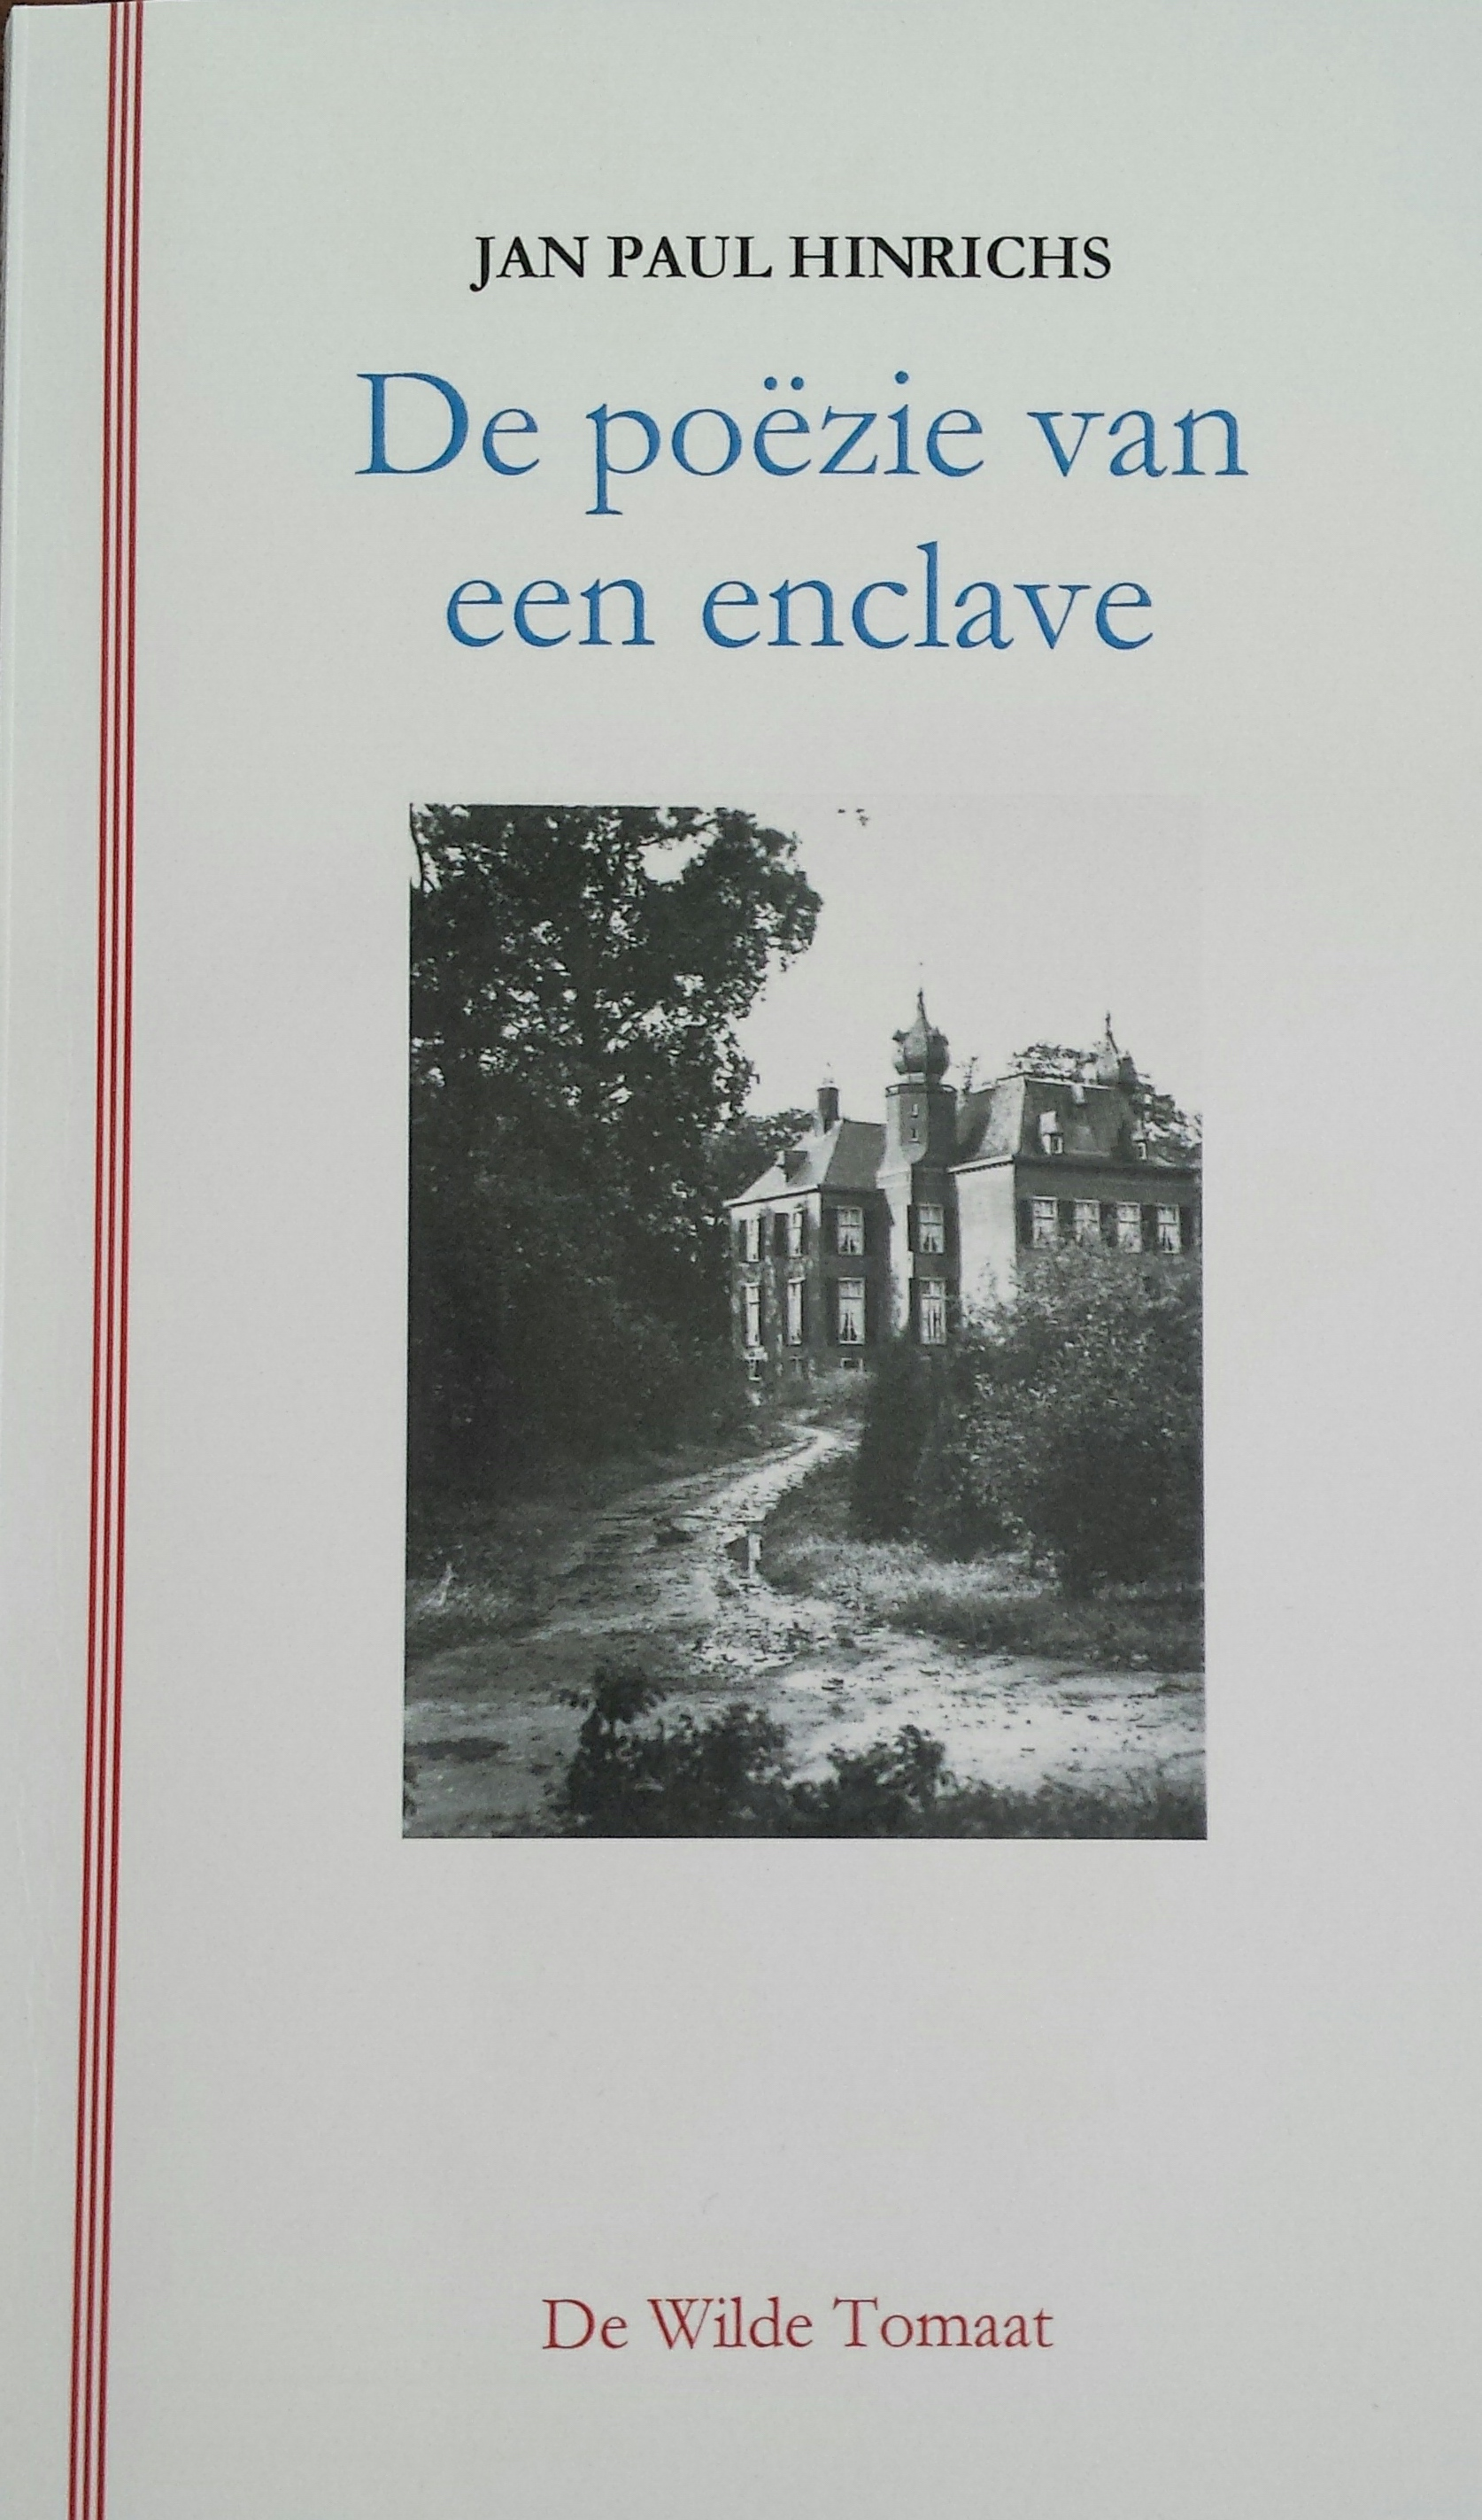 https://oudoegstgeest.nl/images/publicaties/poezie_enclave.jpg